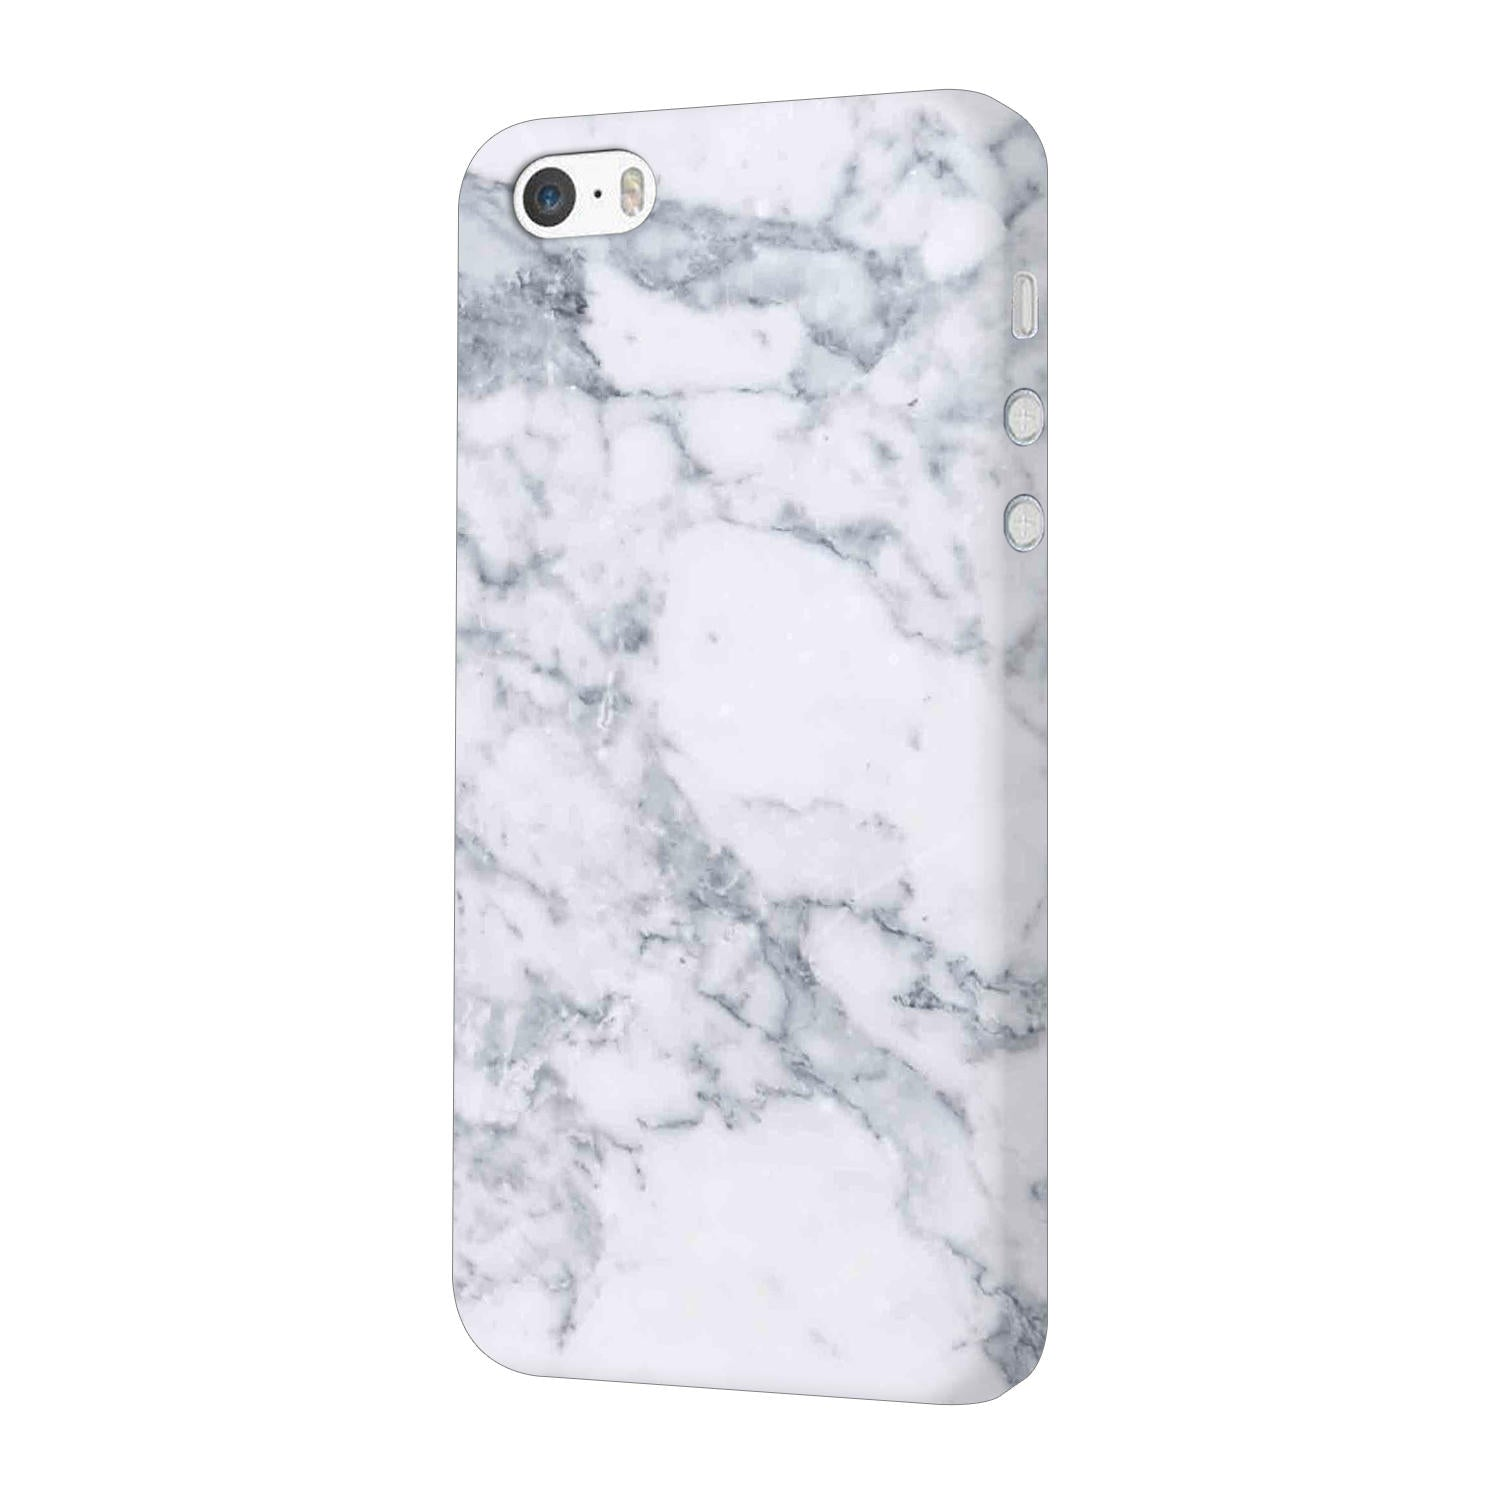 Chic White Marble iPhone 5 Mobile Cover Case - MADANYU